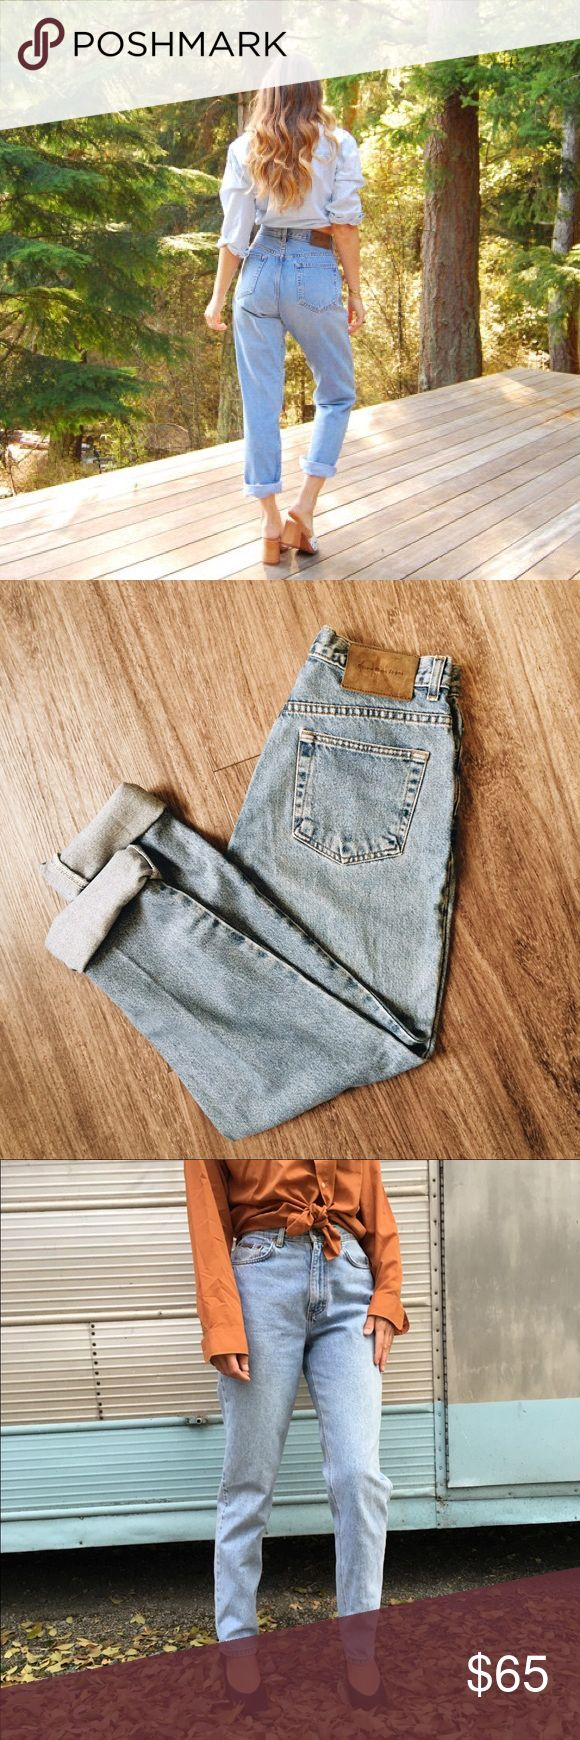 VINTAGE CALVIN KLEIN MOM JEANS W 10 Stone Wash Vintage Calvin Klein Jeans for the Mom Jean look 💙. Stone wash, size 10 inseam 30. Perfect condition with leather CK logo. Classic Fit Jean (color like photo of folded jeans) Calvin Klein Jeans Jeans